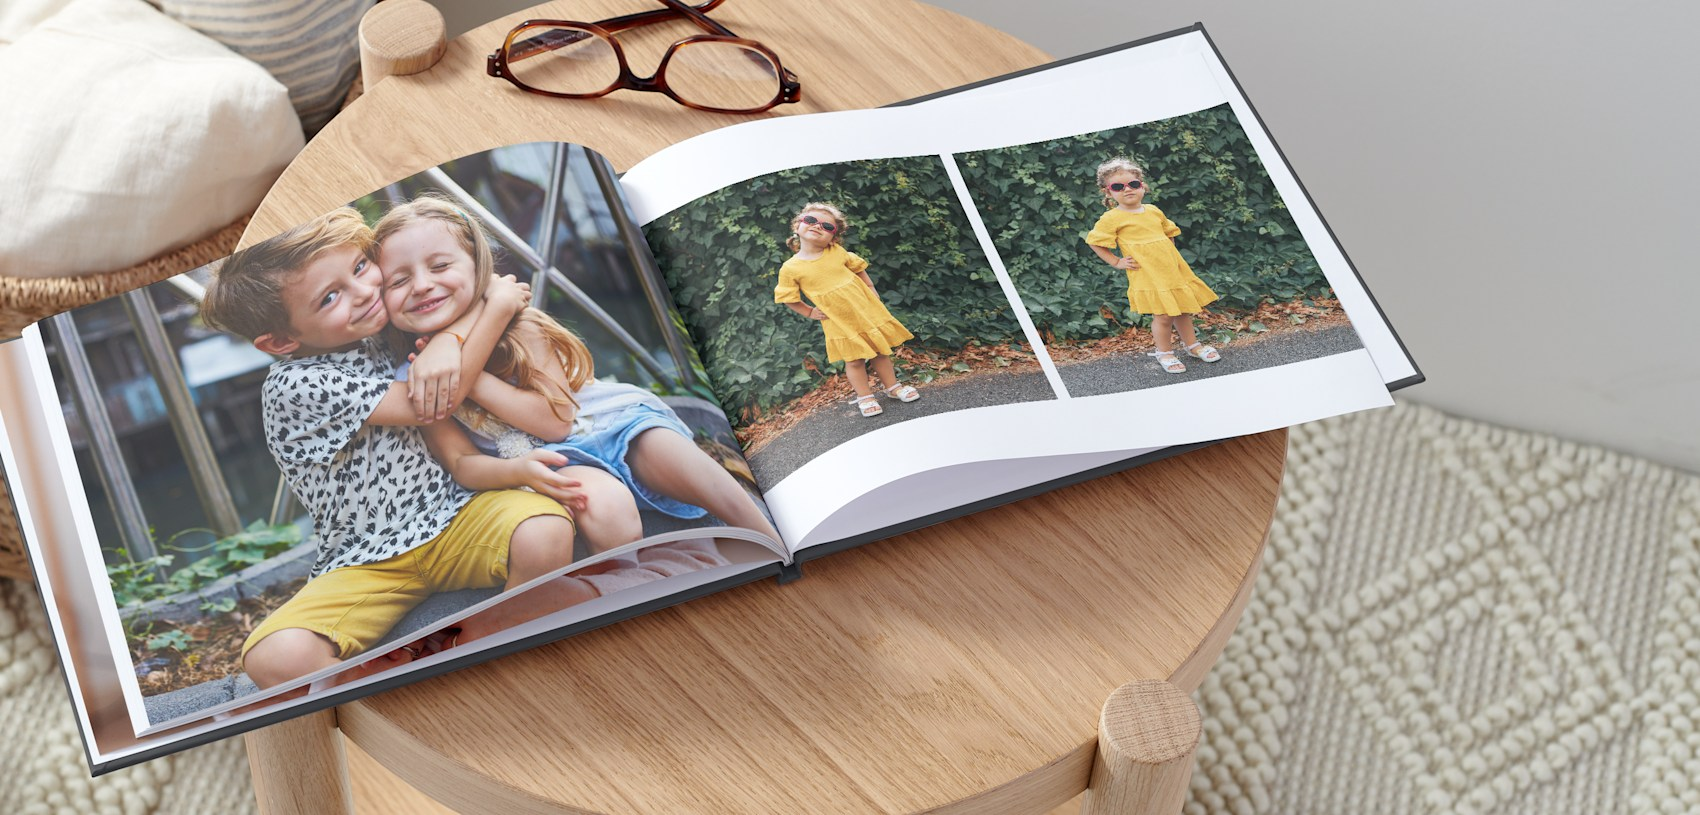 photo book with picture of two young children hugging